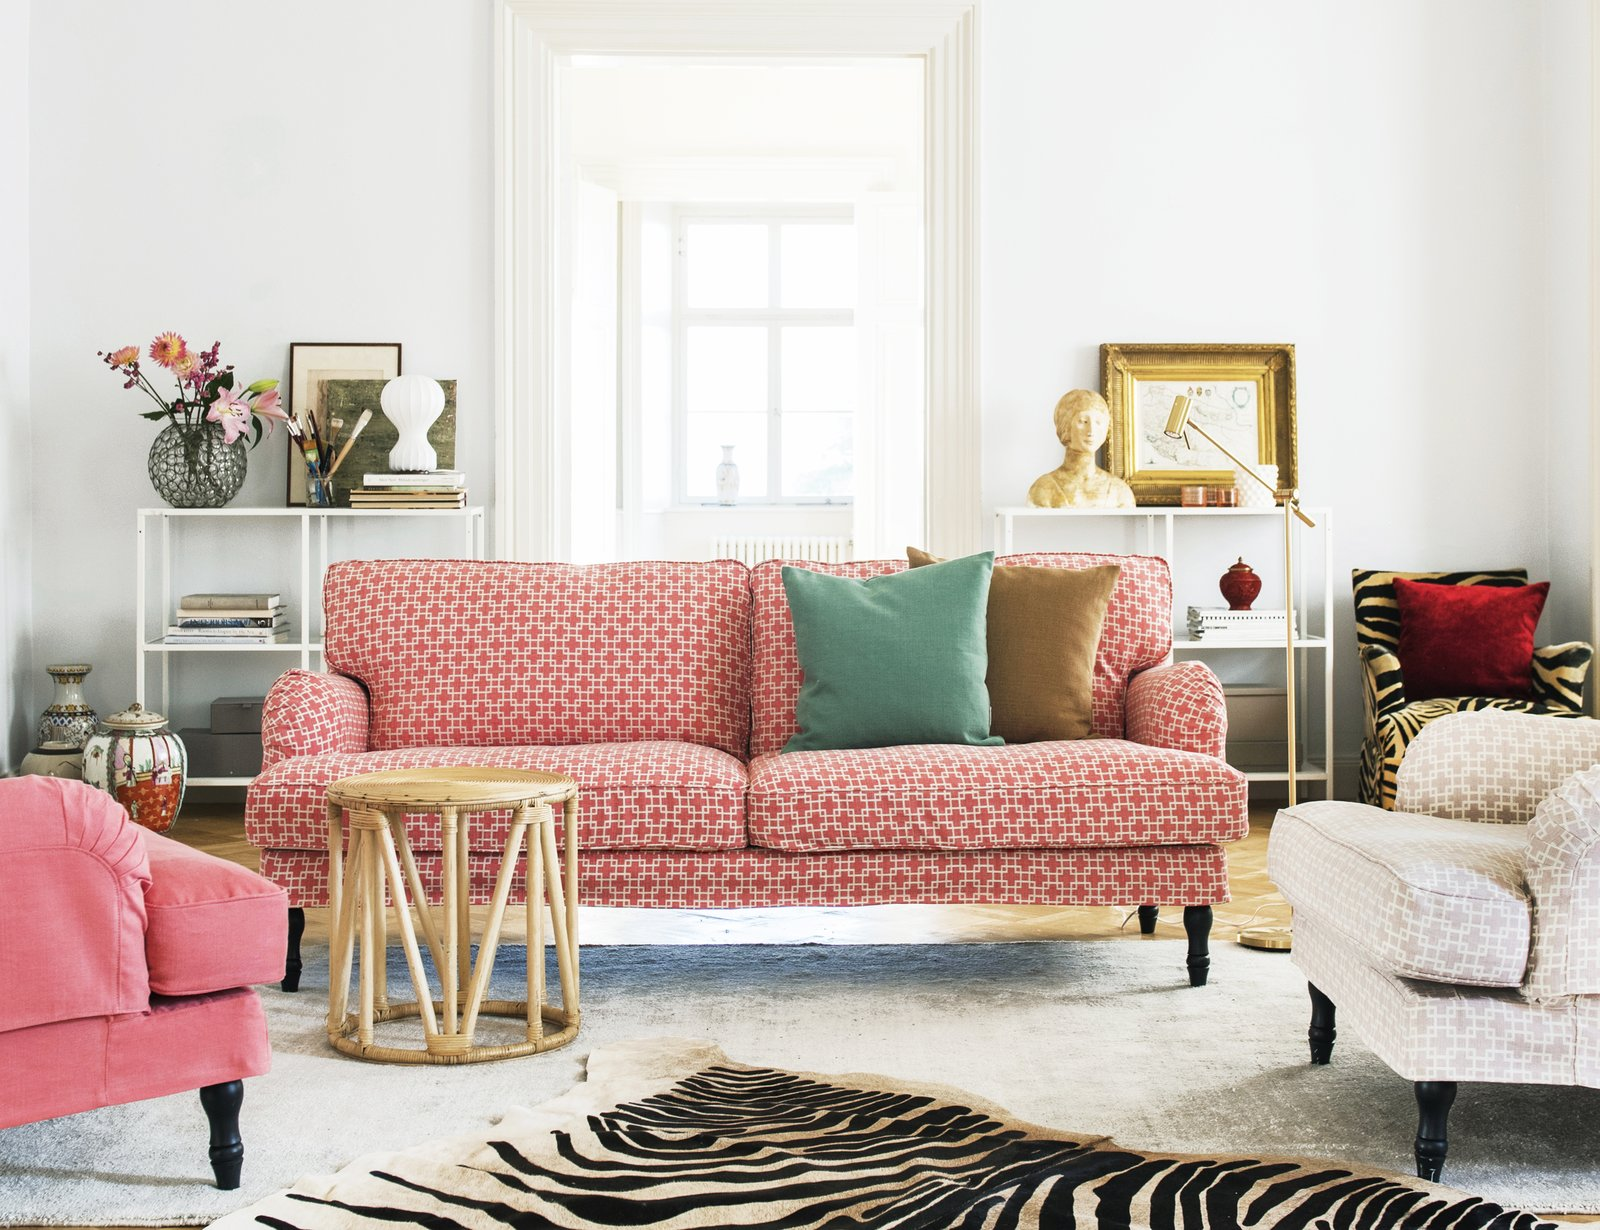 How To Choose An Ikea Sofa Match Your Personal Interior Style